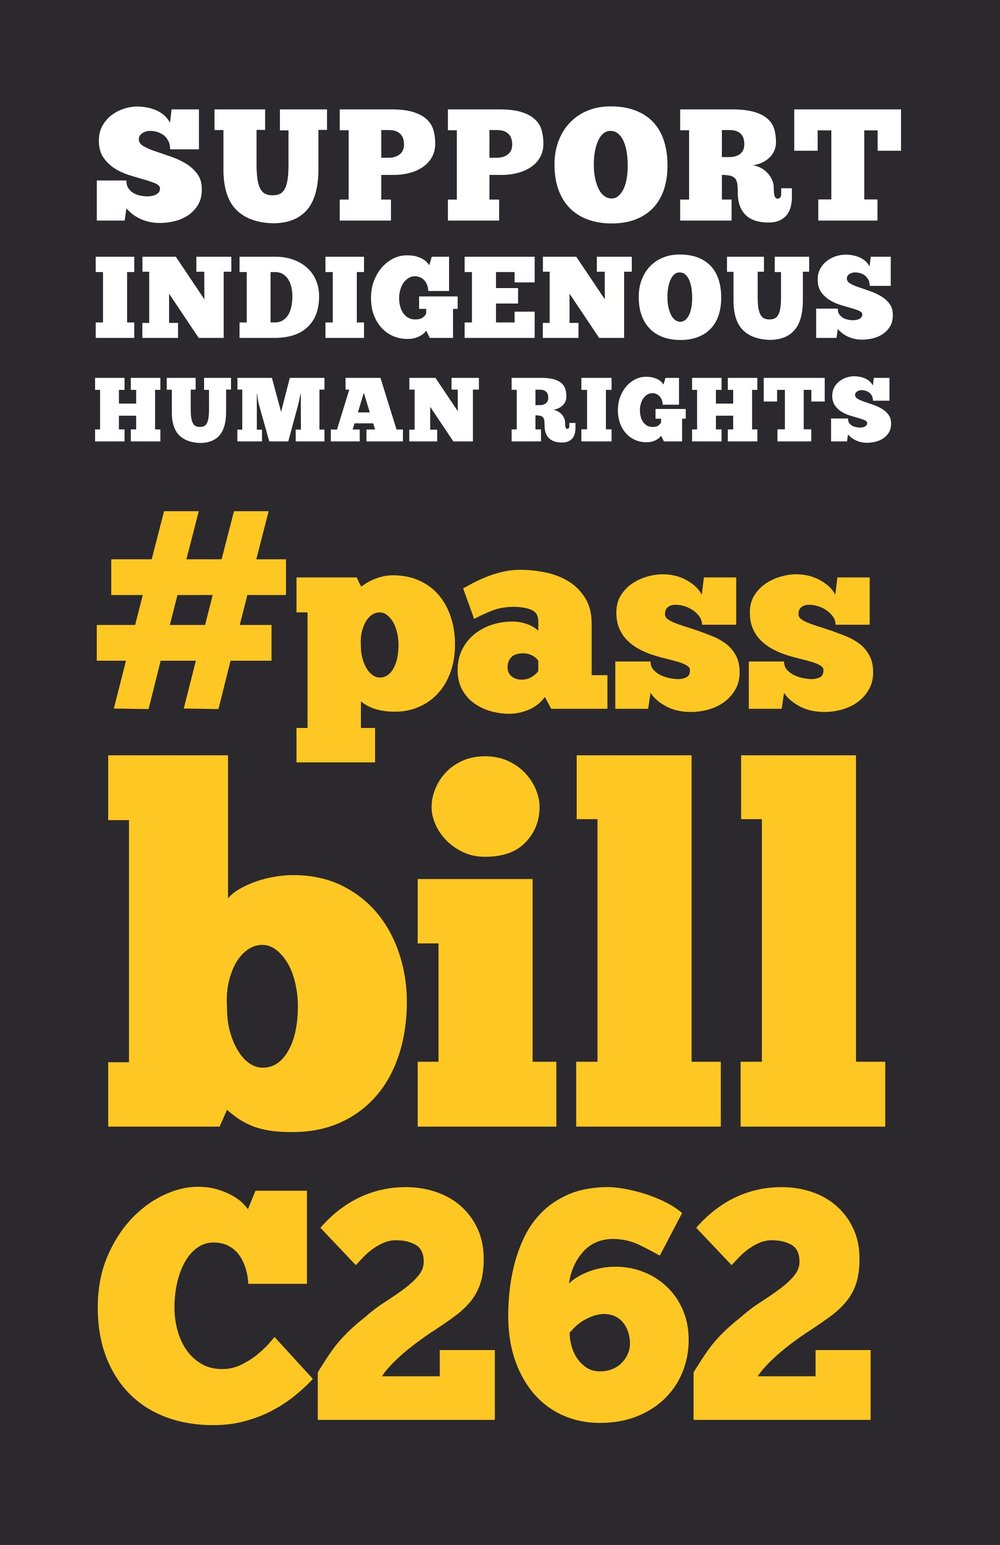 Support Indig Rights POSTER-1.jpg